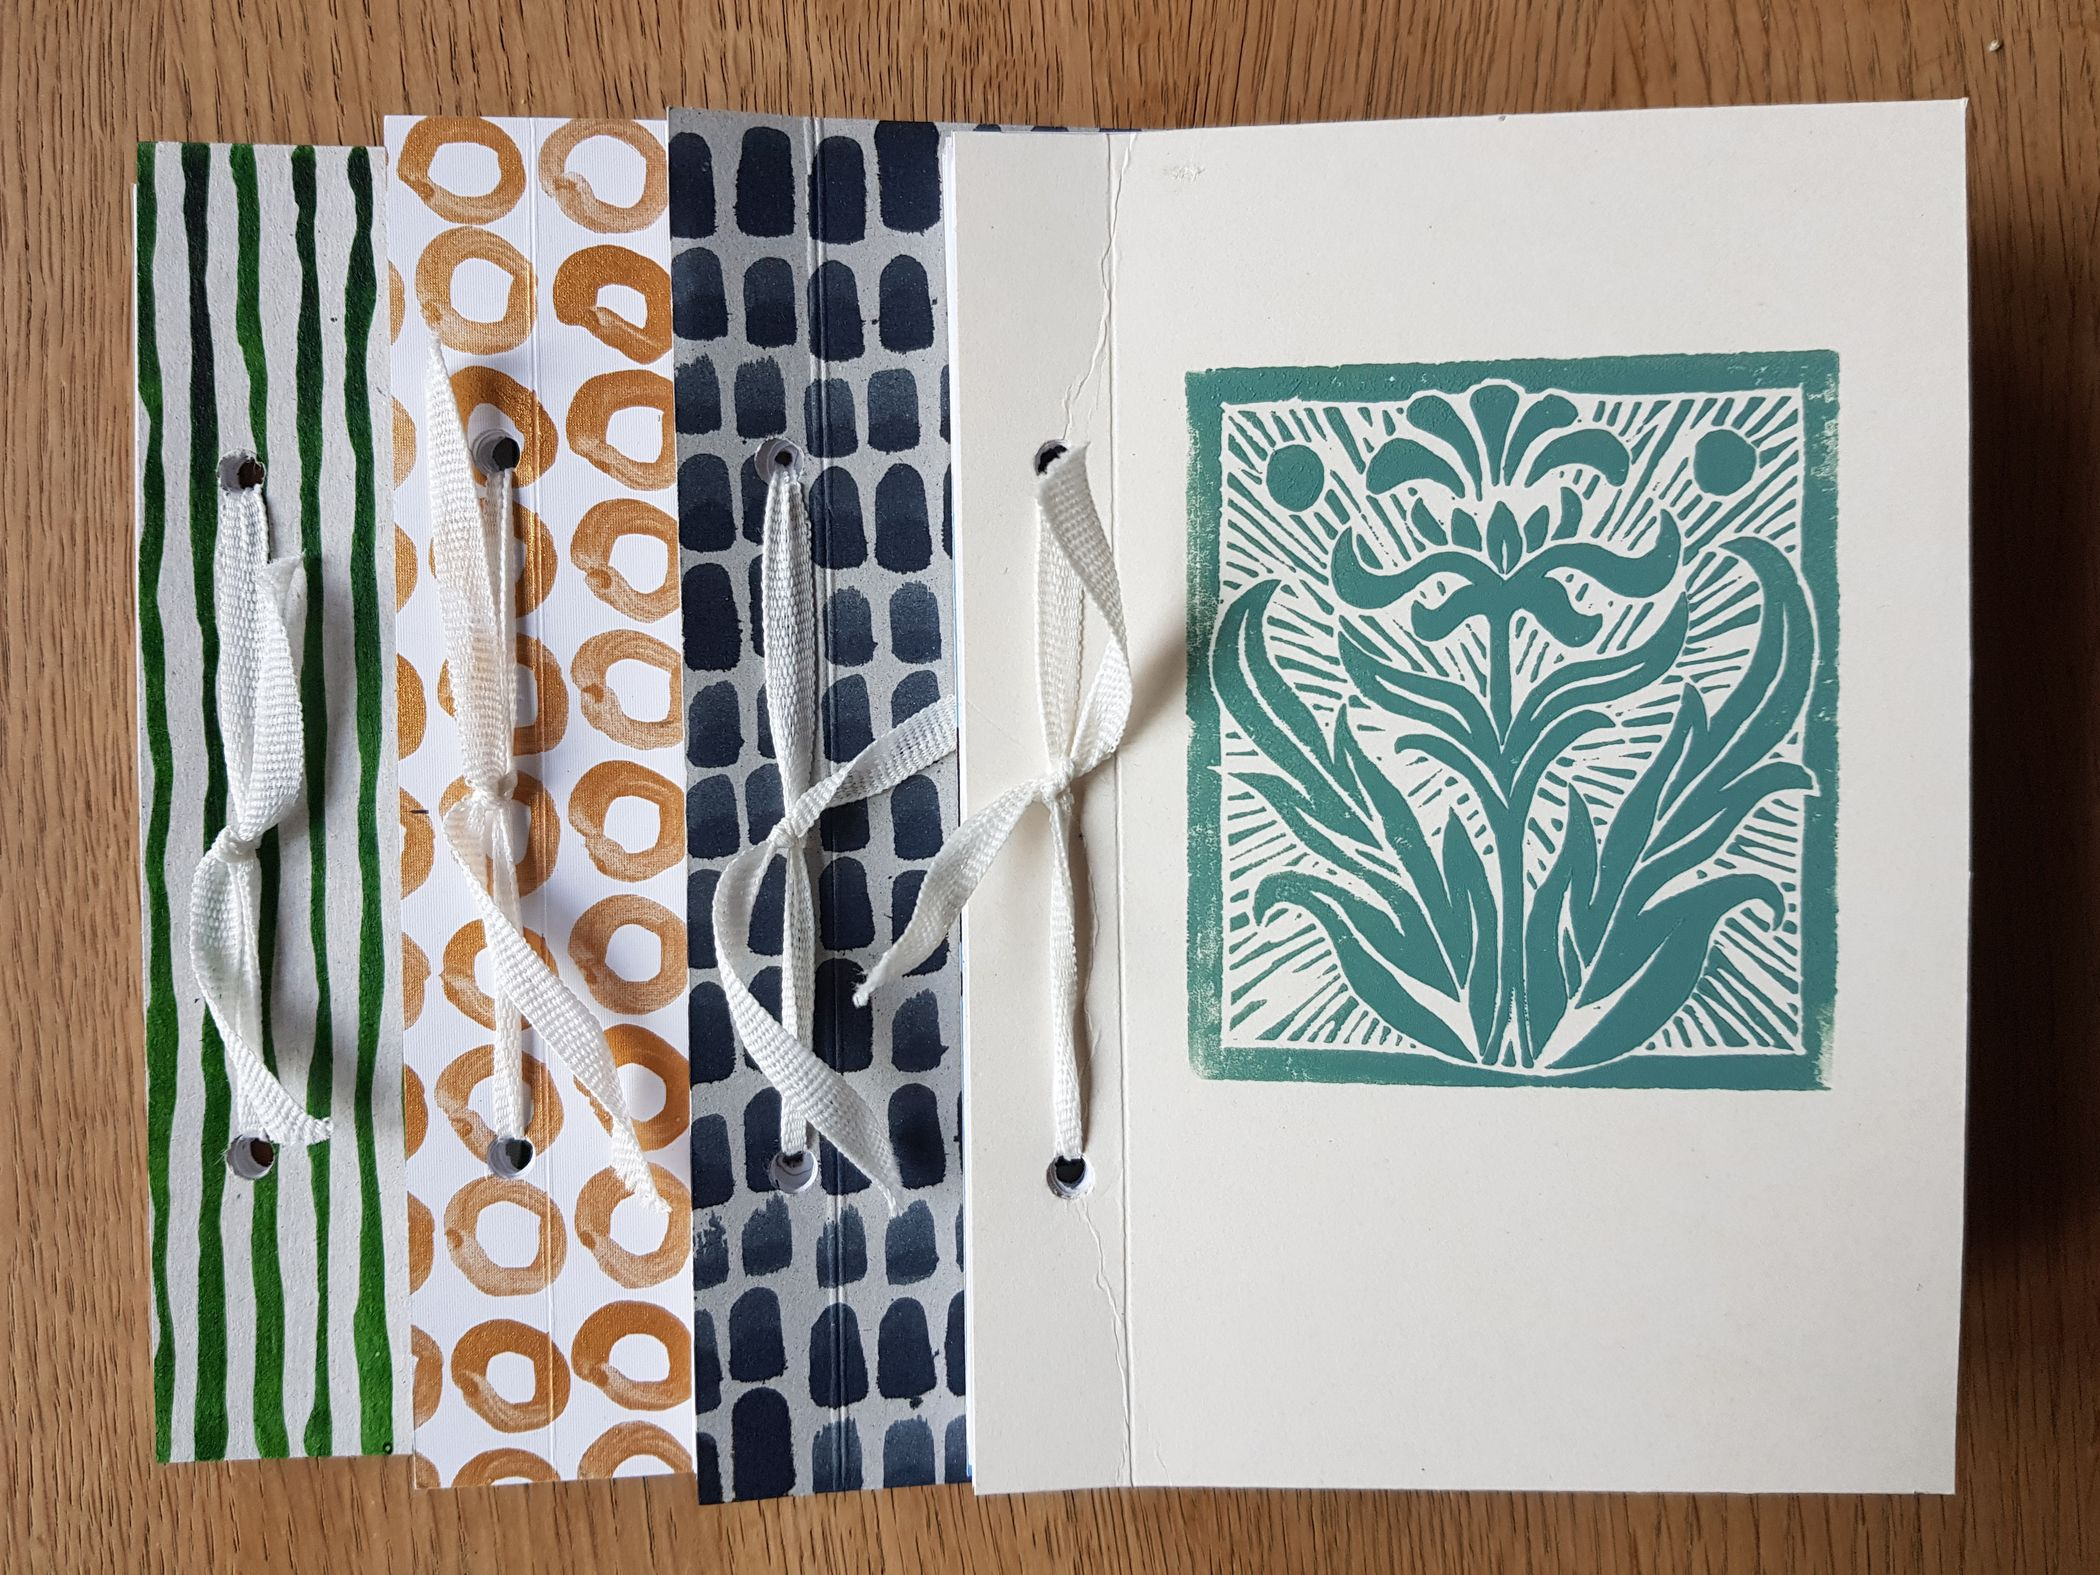 Make a notebook for your artwork or notes.